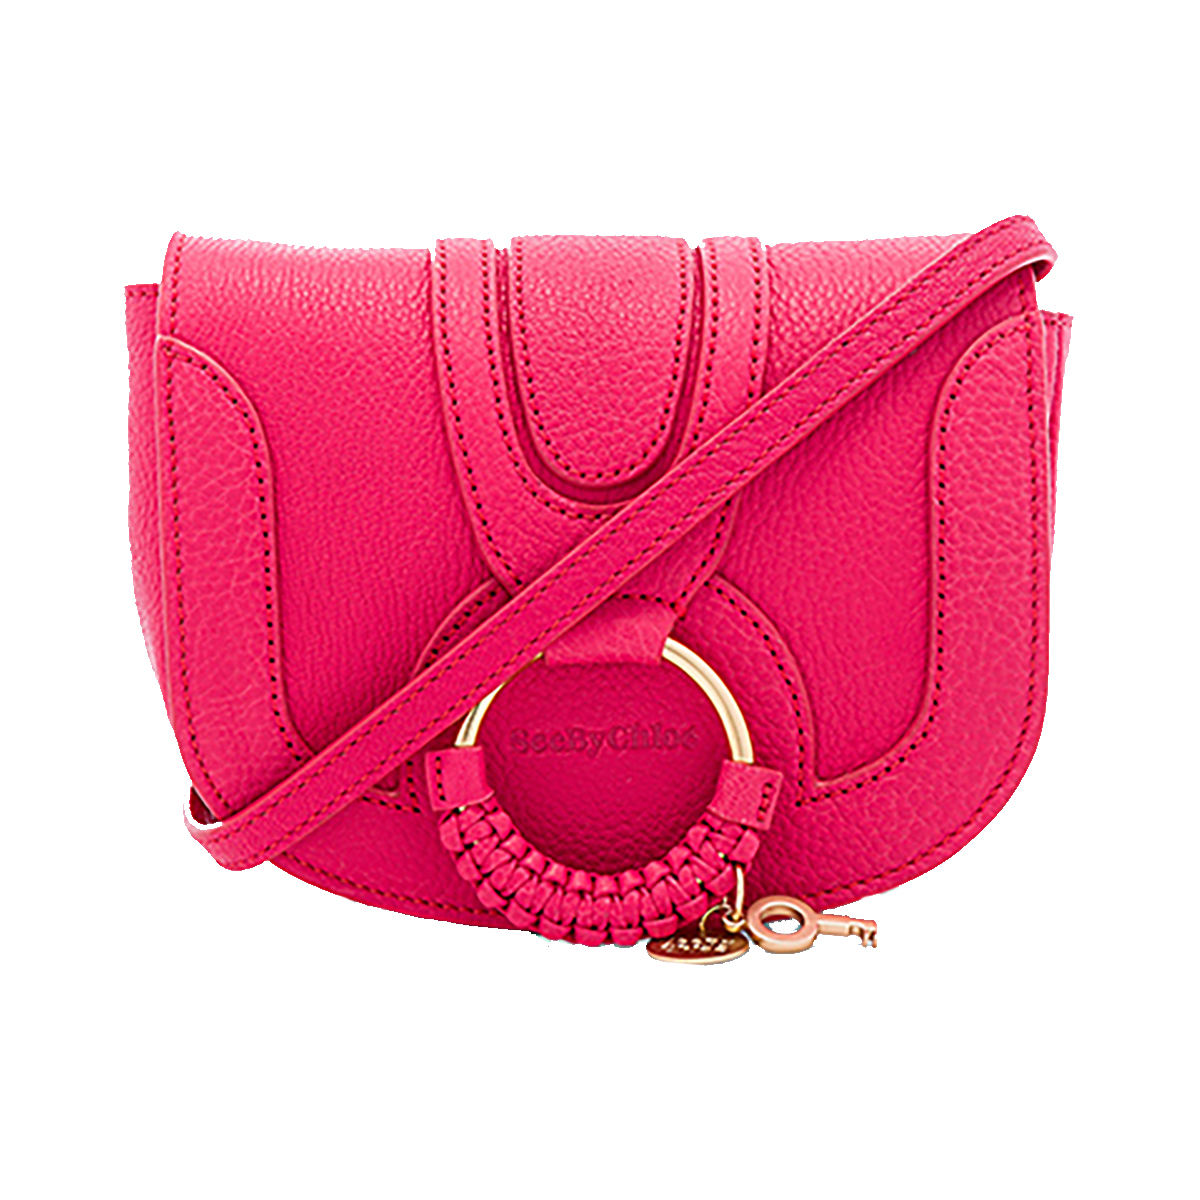 see-by-chloe-hana-mini-crossbody-bag